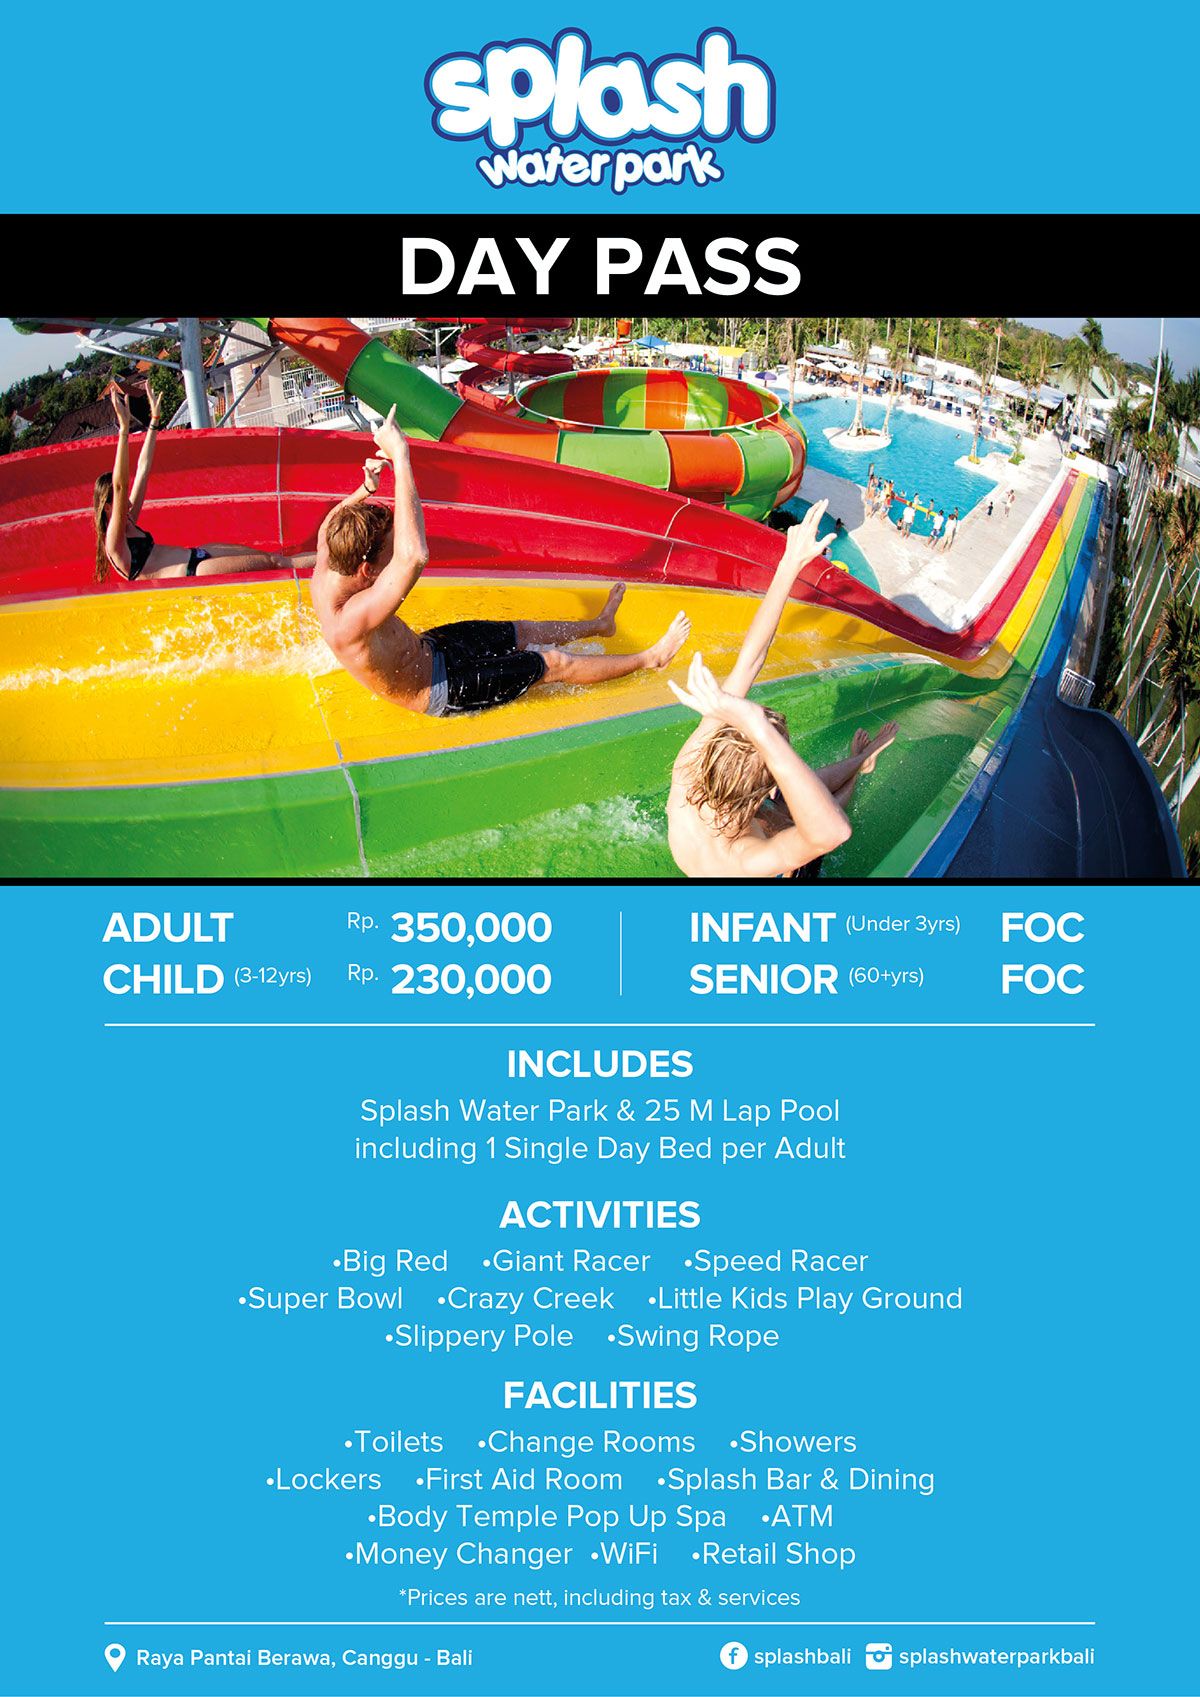 Splash Day Pass